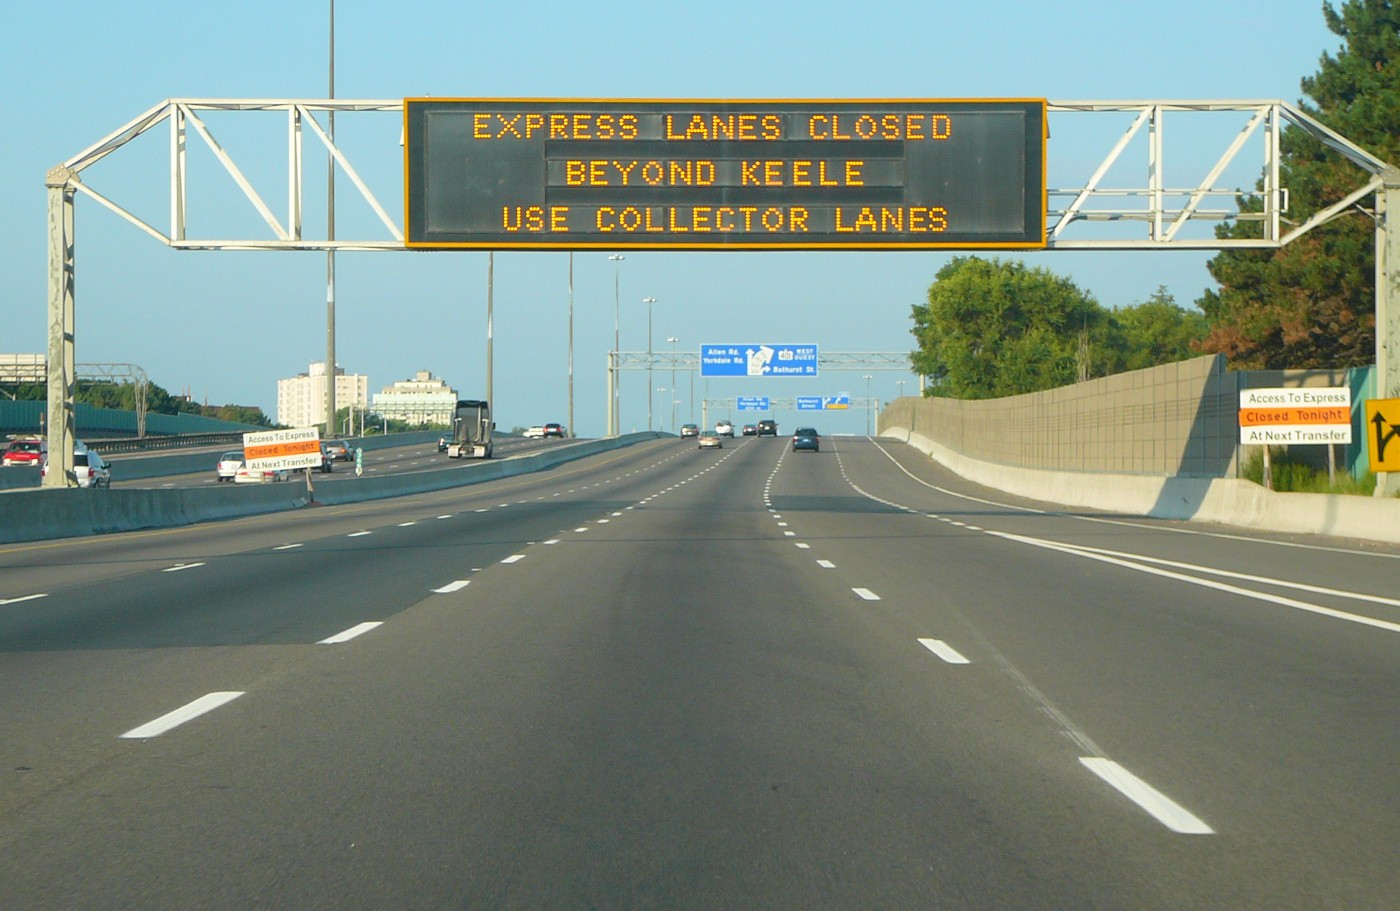 Express Lanes Closed Variable Message Sign